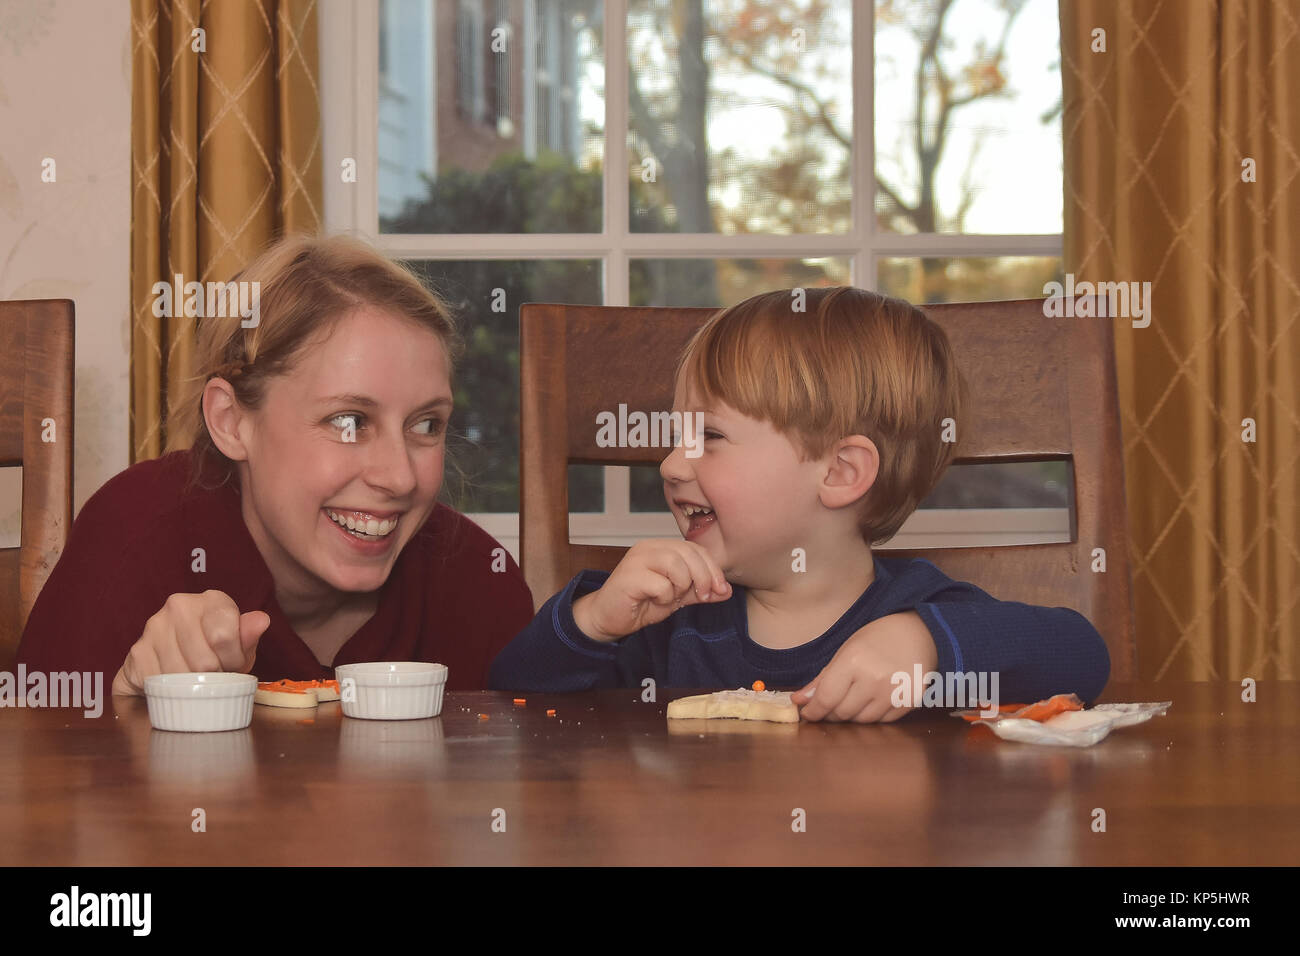 Mother and Son sitting in kitchen together decorating cookies - Stock Image